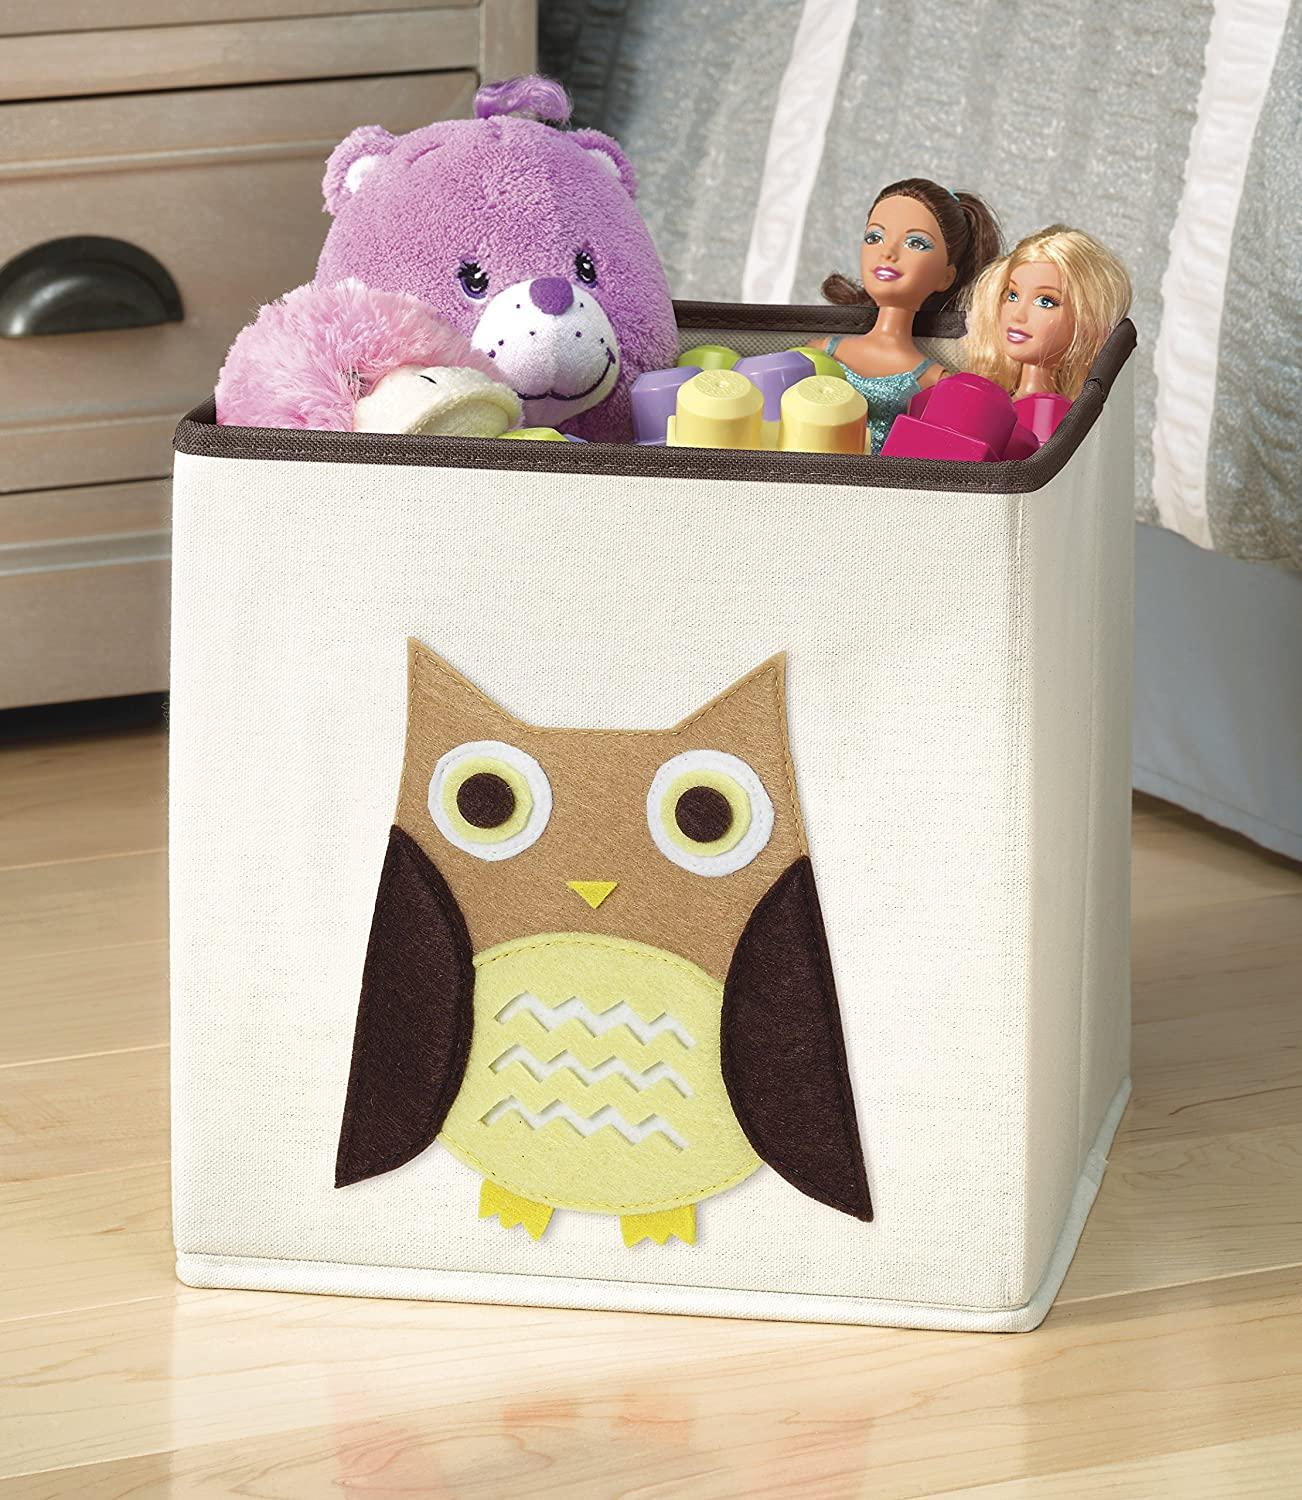 Whitmor Kids Canvas Collapsible Cube-Brown Owl